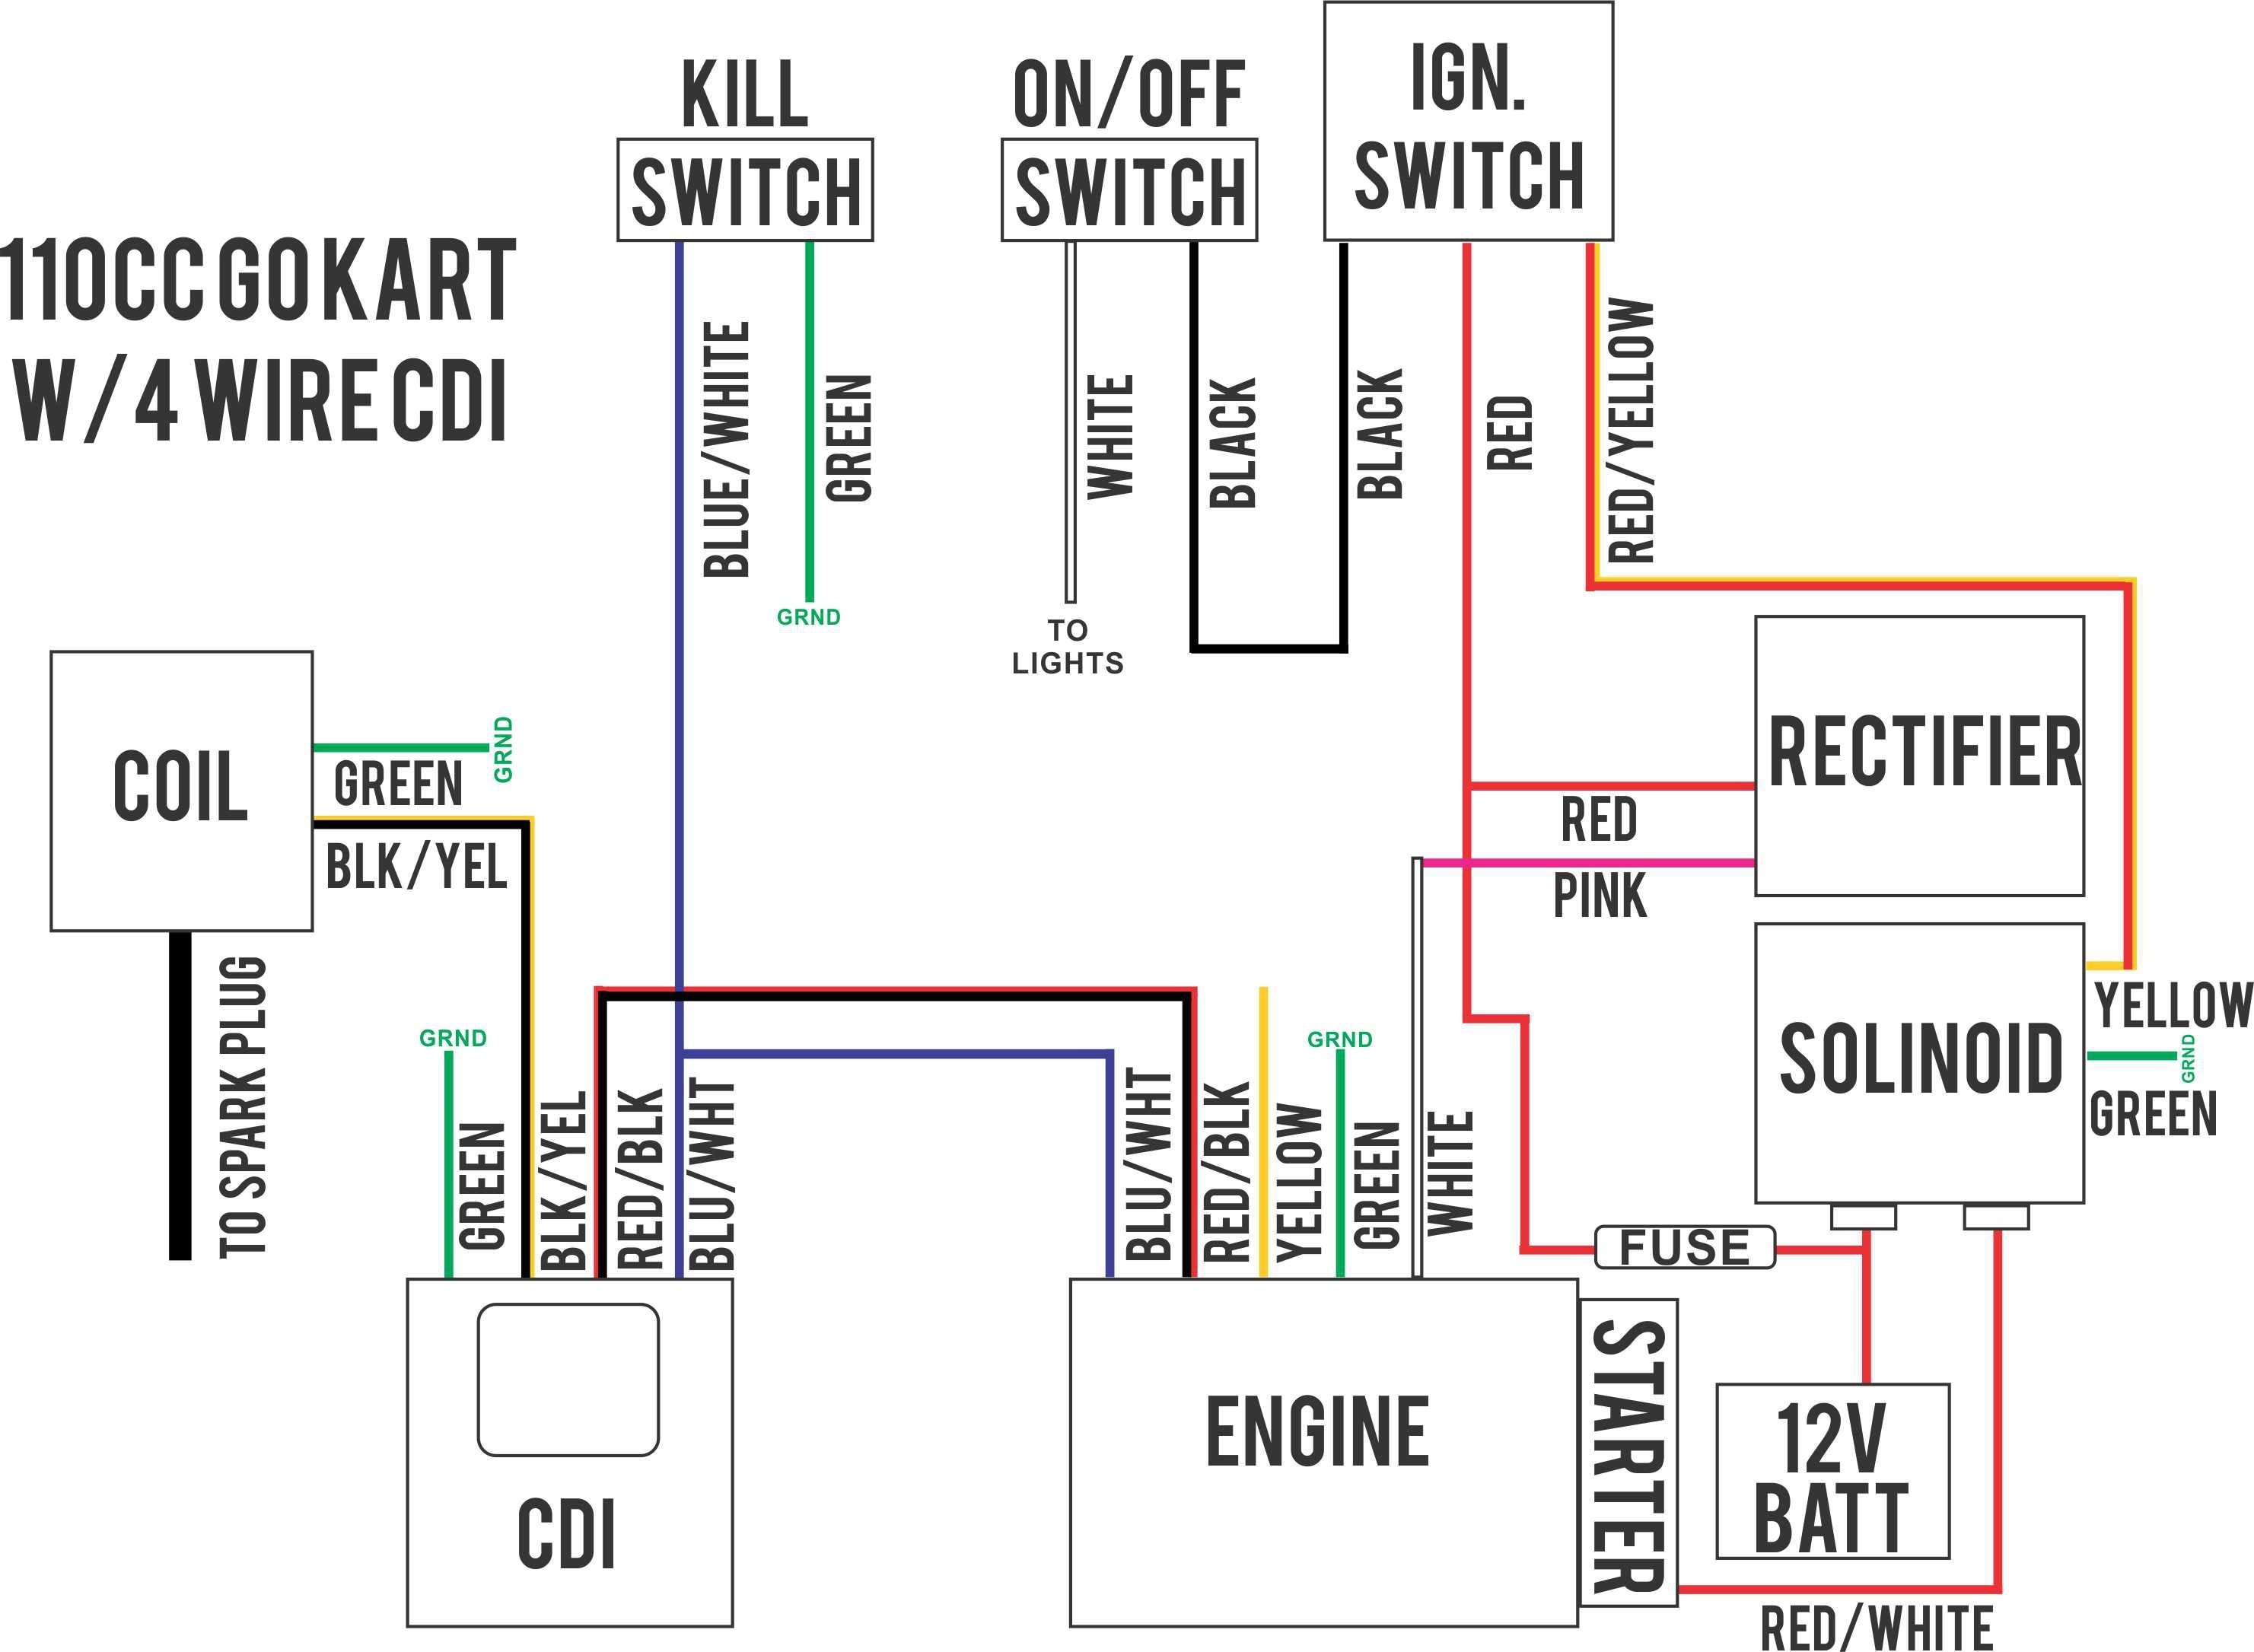 wiring diagram for chinese 110 atv refrence tao tao 110cc engine rh eugrab Tao Tao 110 ATV Parts Diagram Tao Tao 125Cc 4 Wheeler Wiring Diagram